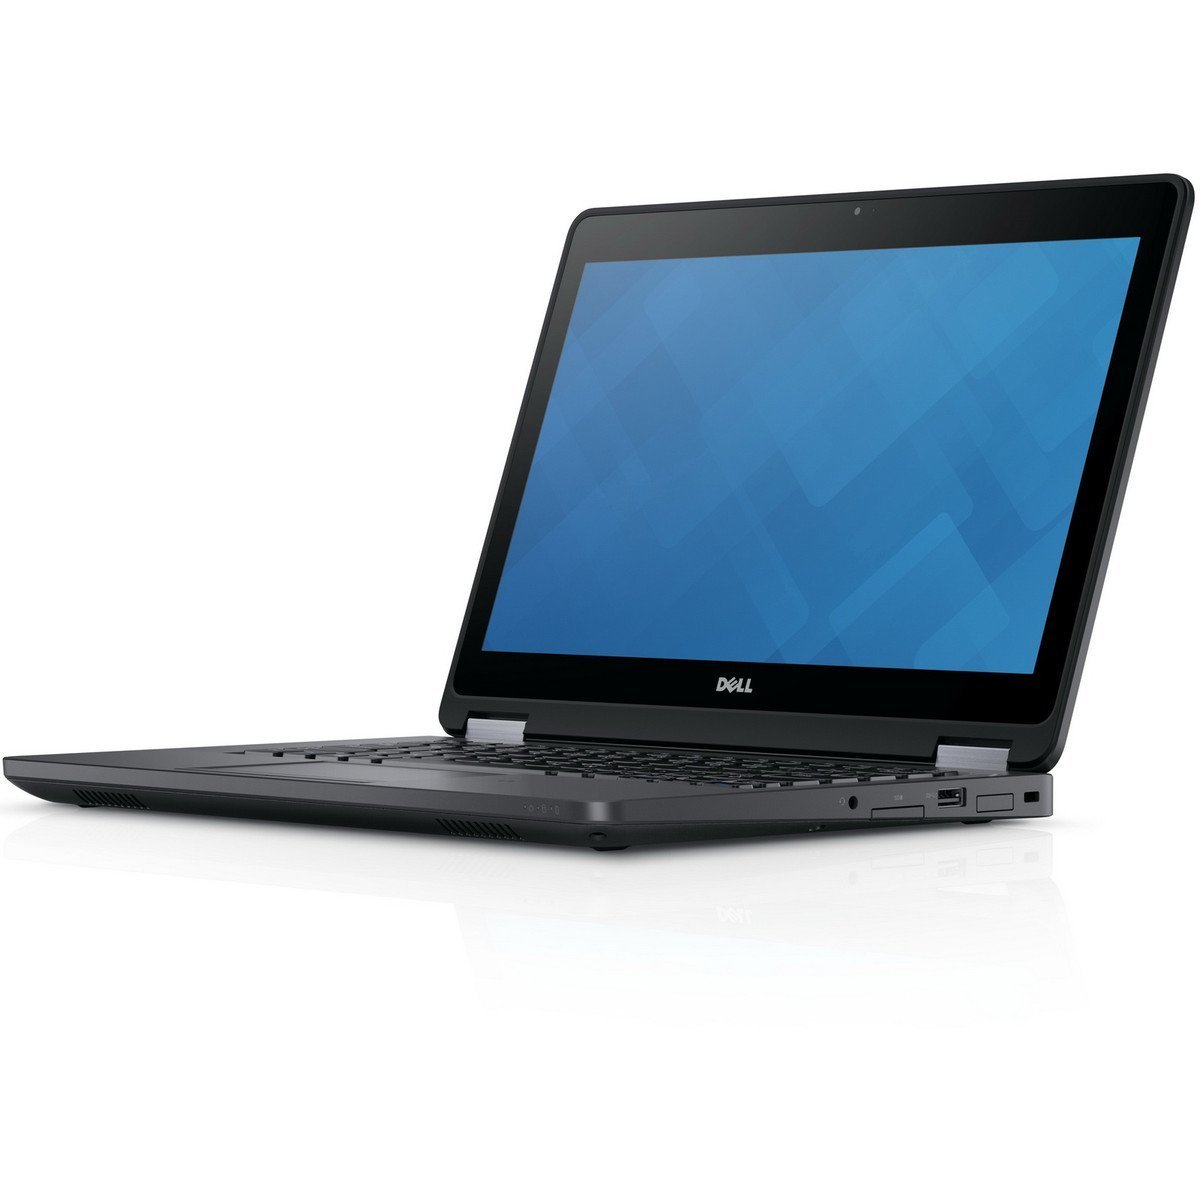 Dell Latitude E5270 i5-6200U Ram 8Gb 12.5inch FHD Touch Windows 10